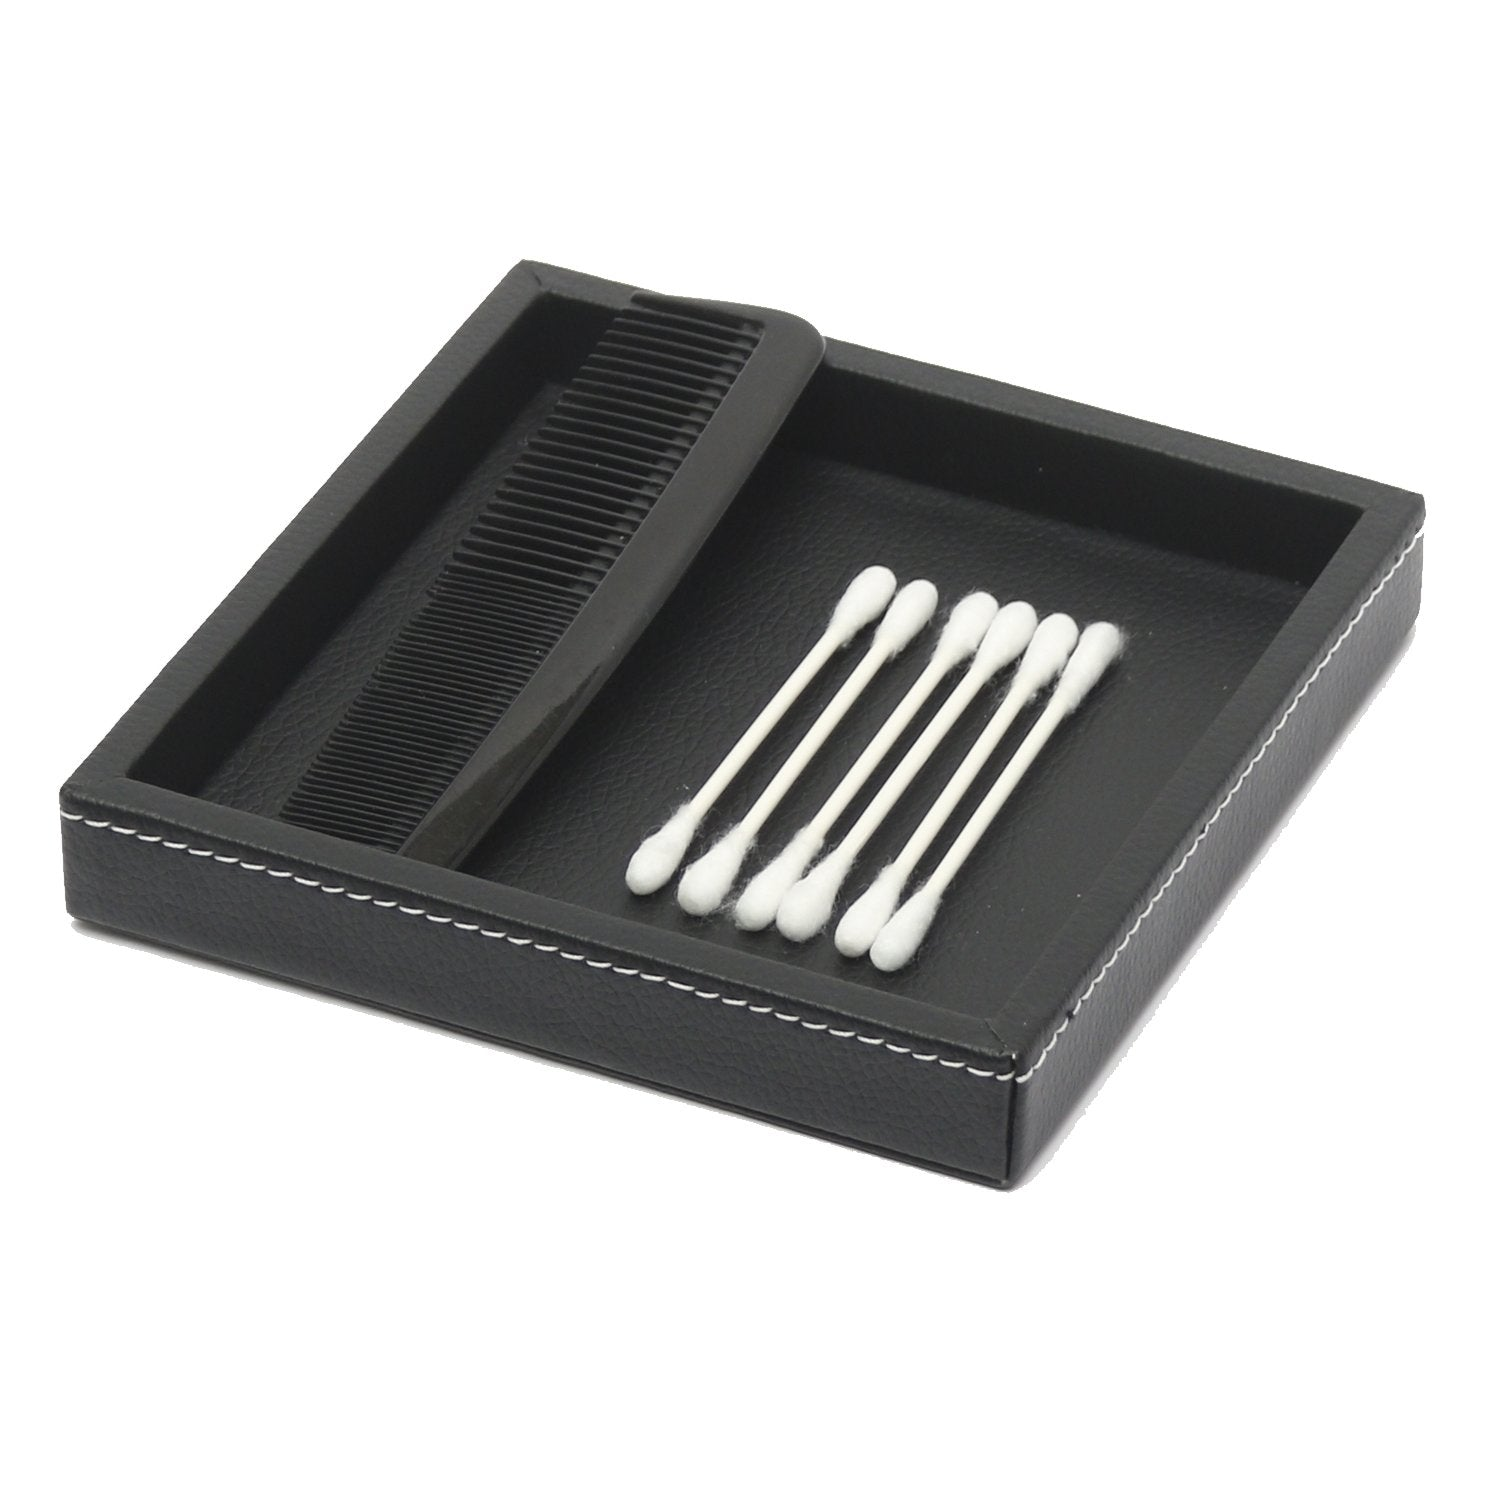 Mini Tray - Black Leatherette